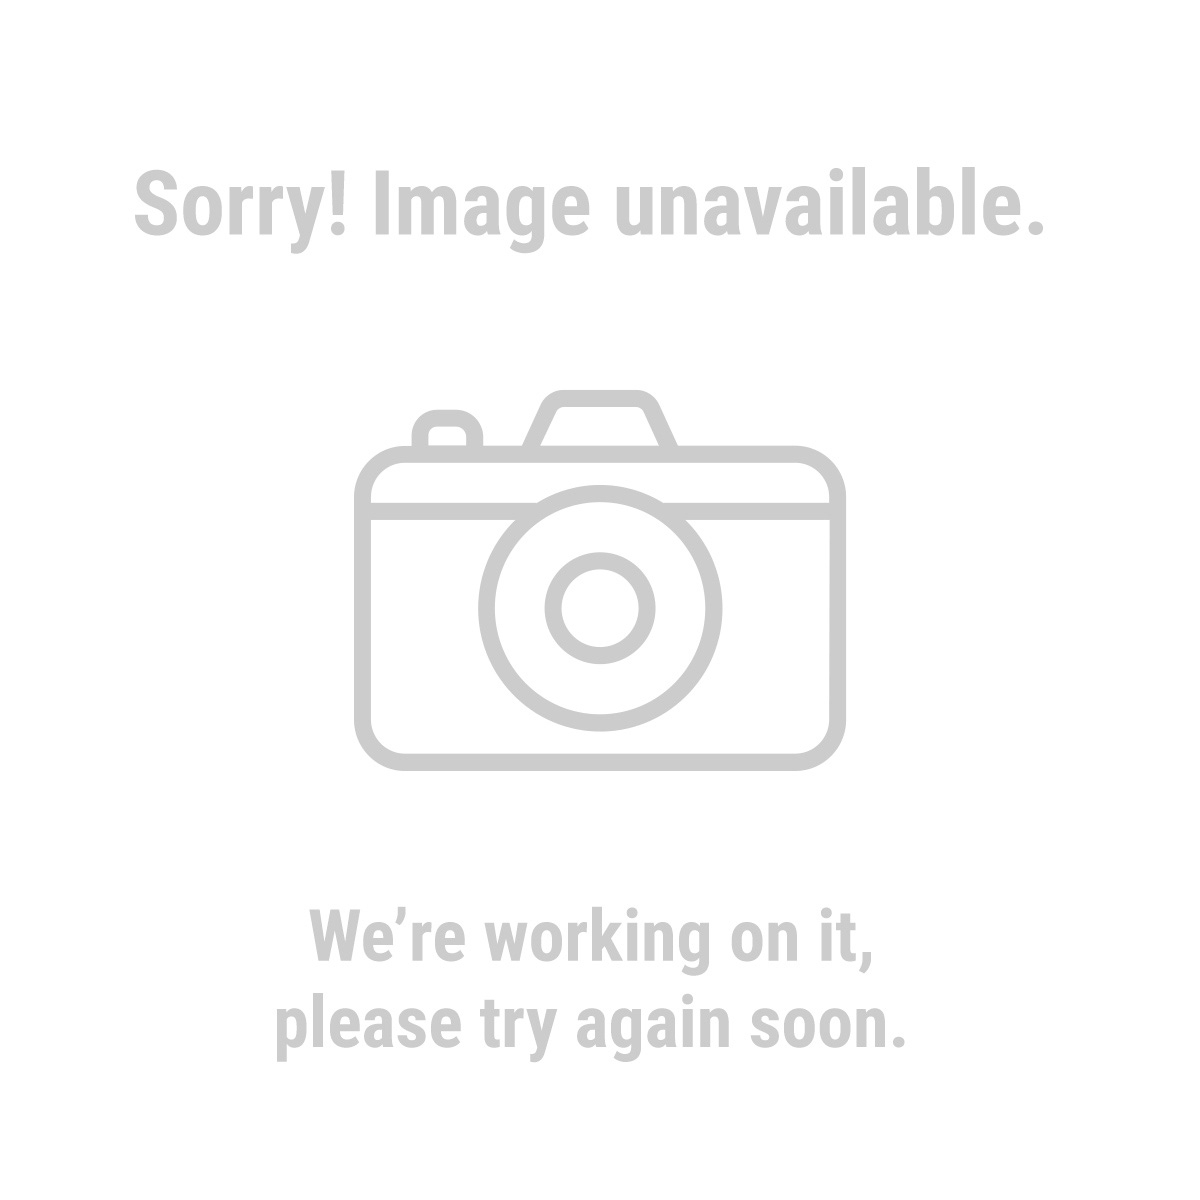 "Gordon 97036 3-1/2"" Nine LED Flashlights, 2 Pack"